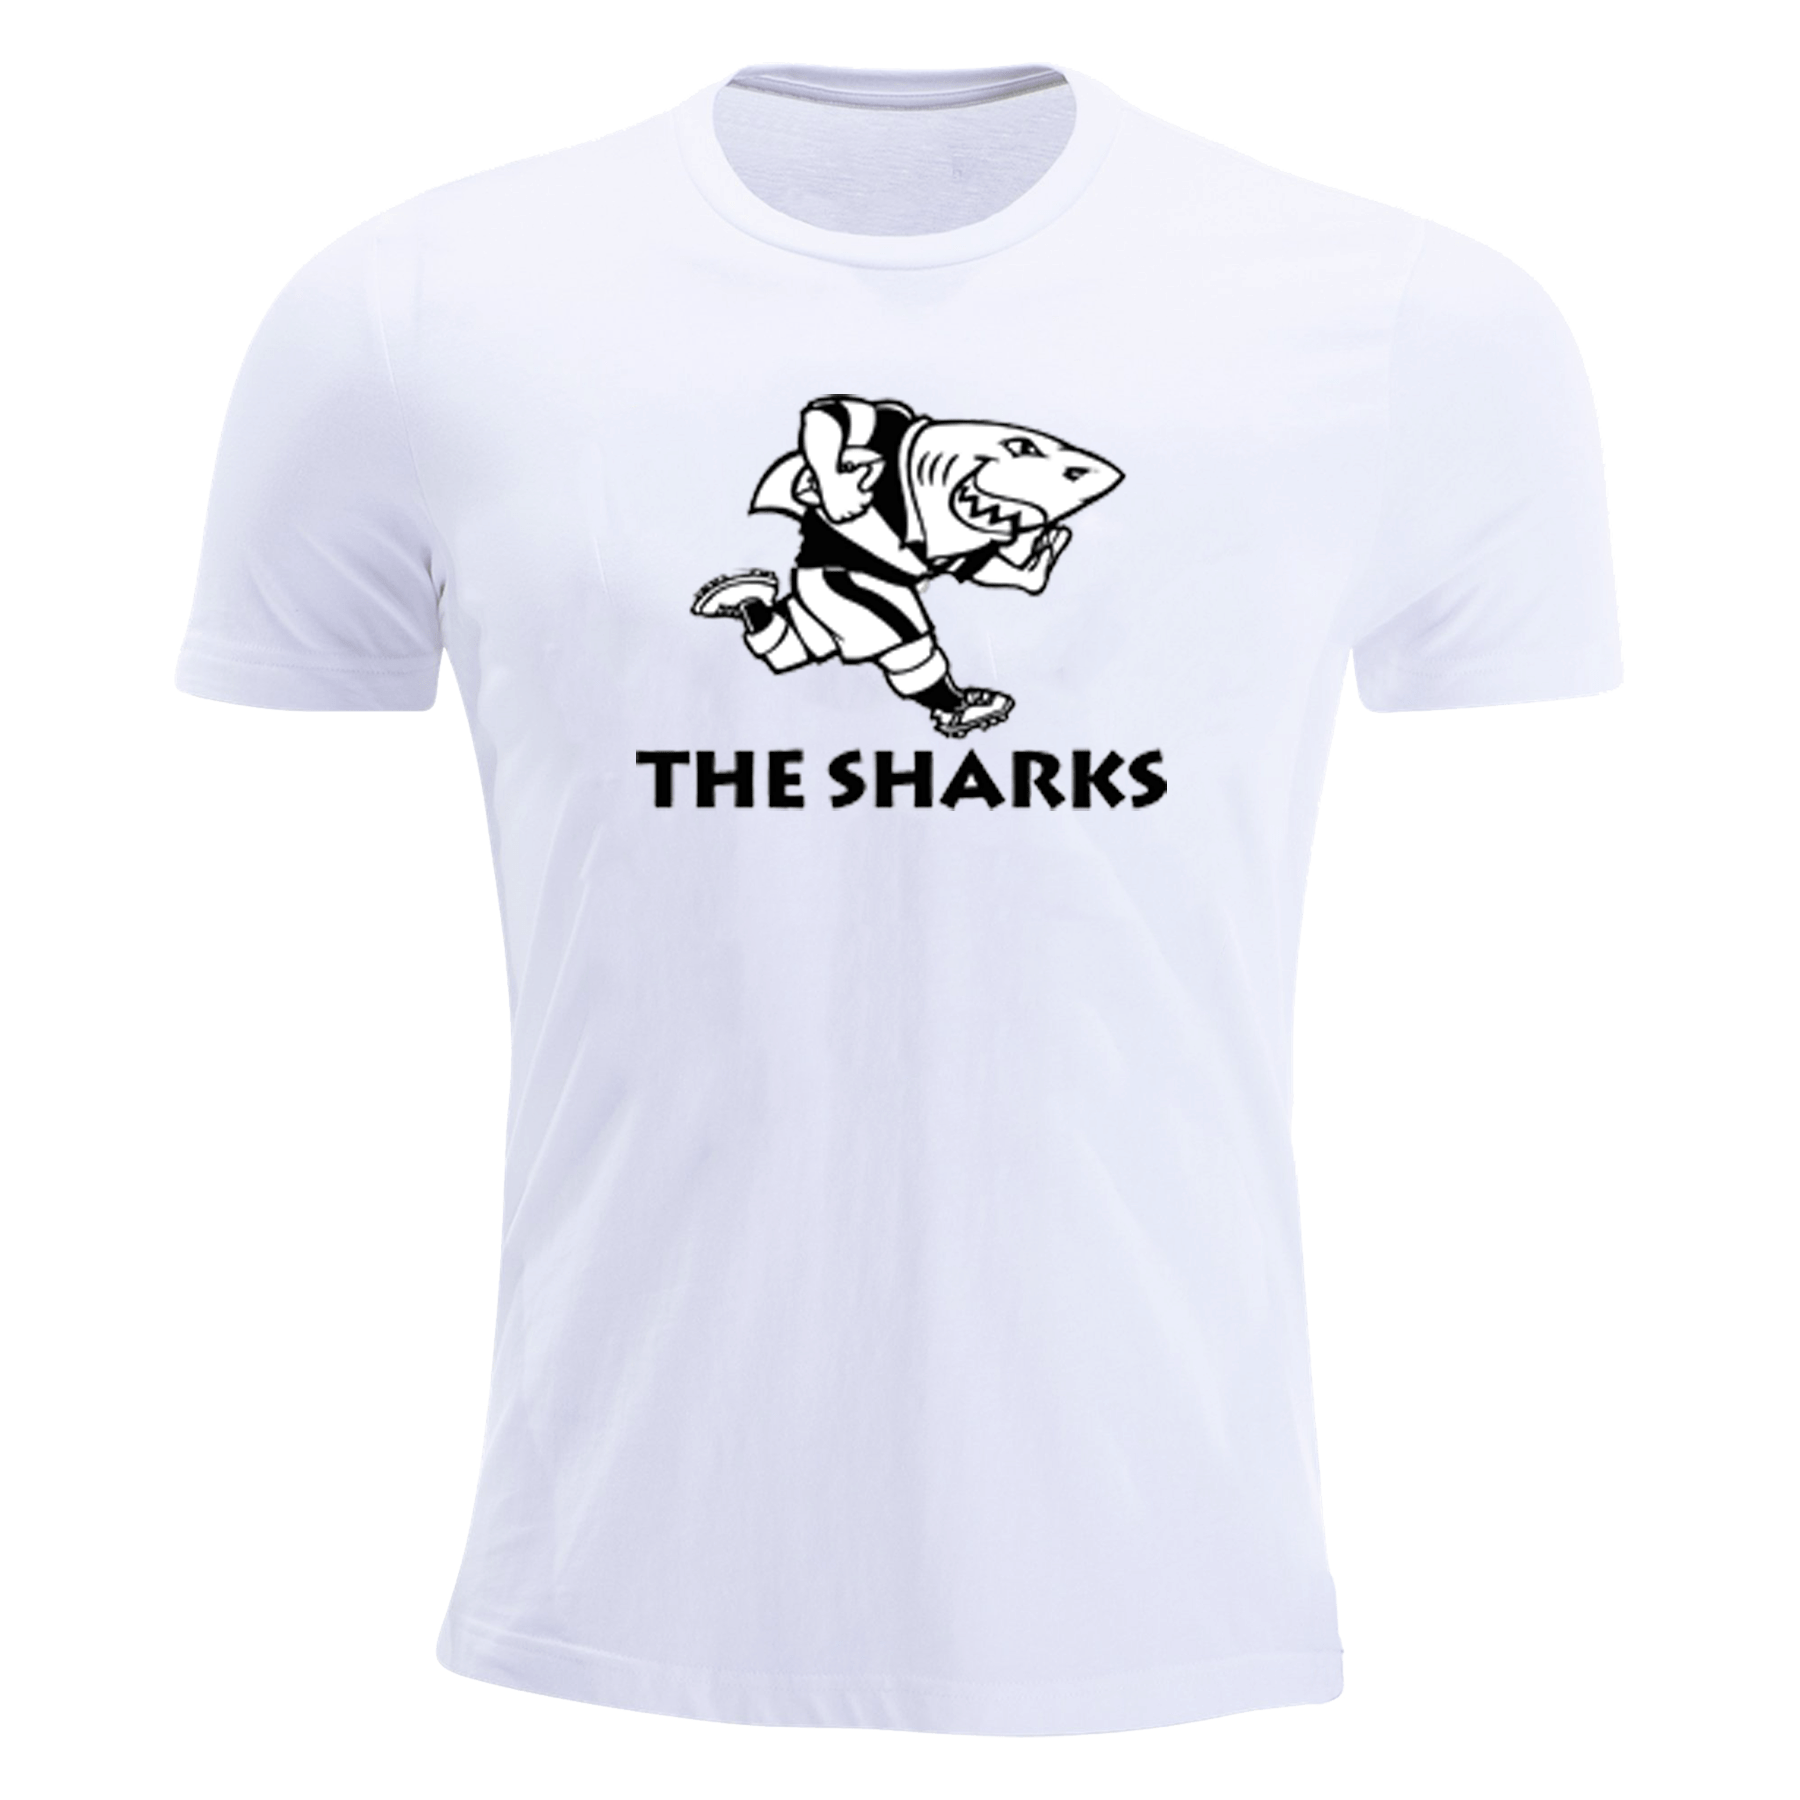 The Sharks Short-Sleeve T-Shirt White